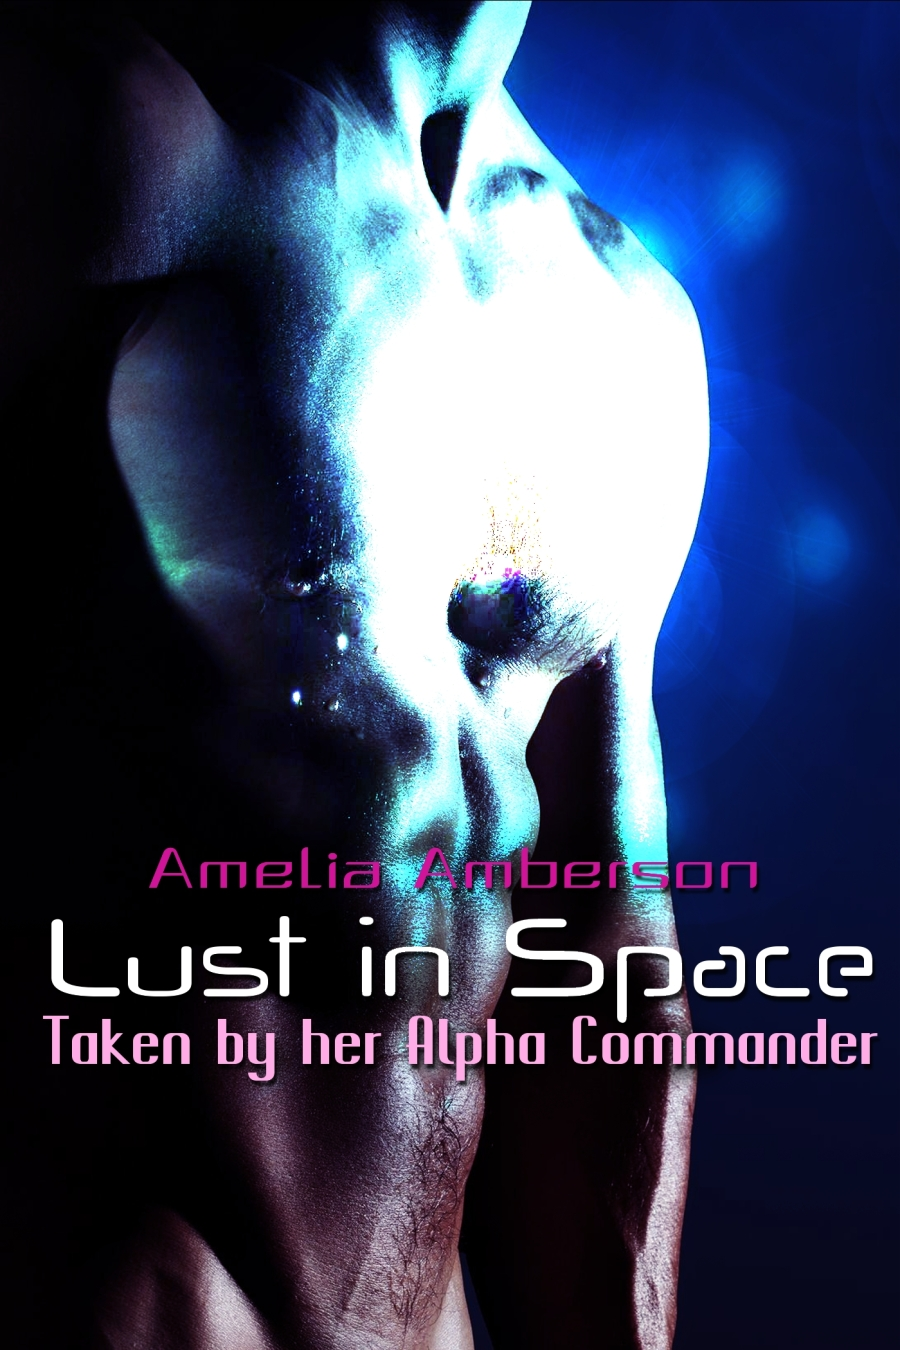 Amelia Amberson - Lust in Space - Taken by her Alpha Commander (Sci-Fi Erotica)